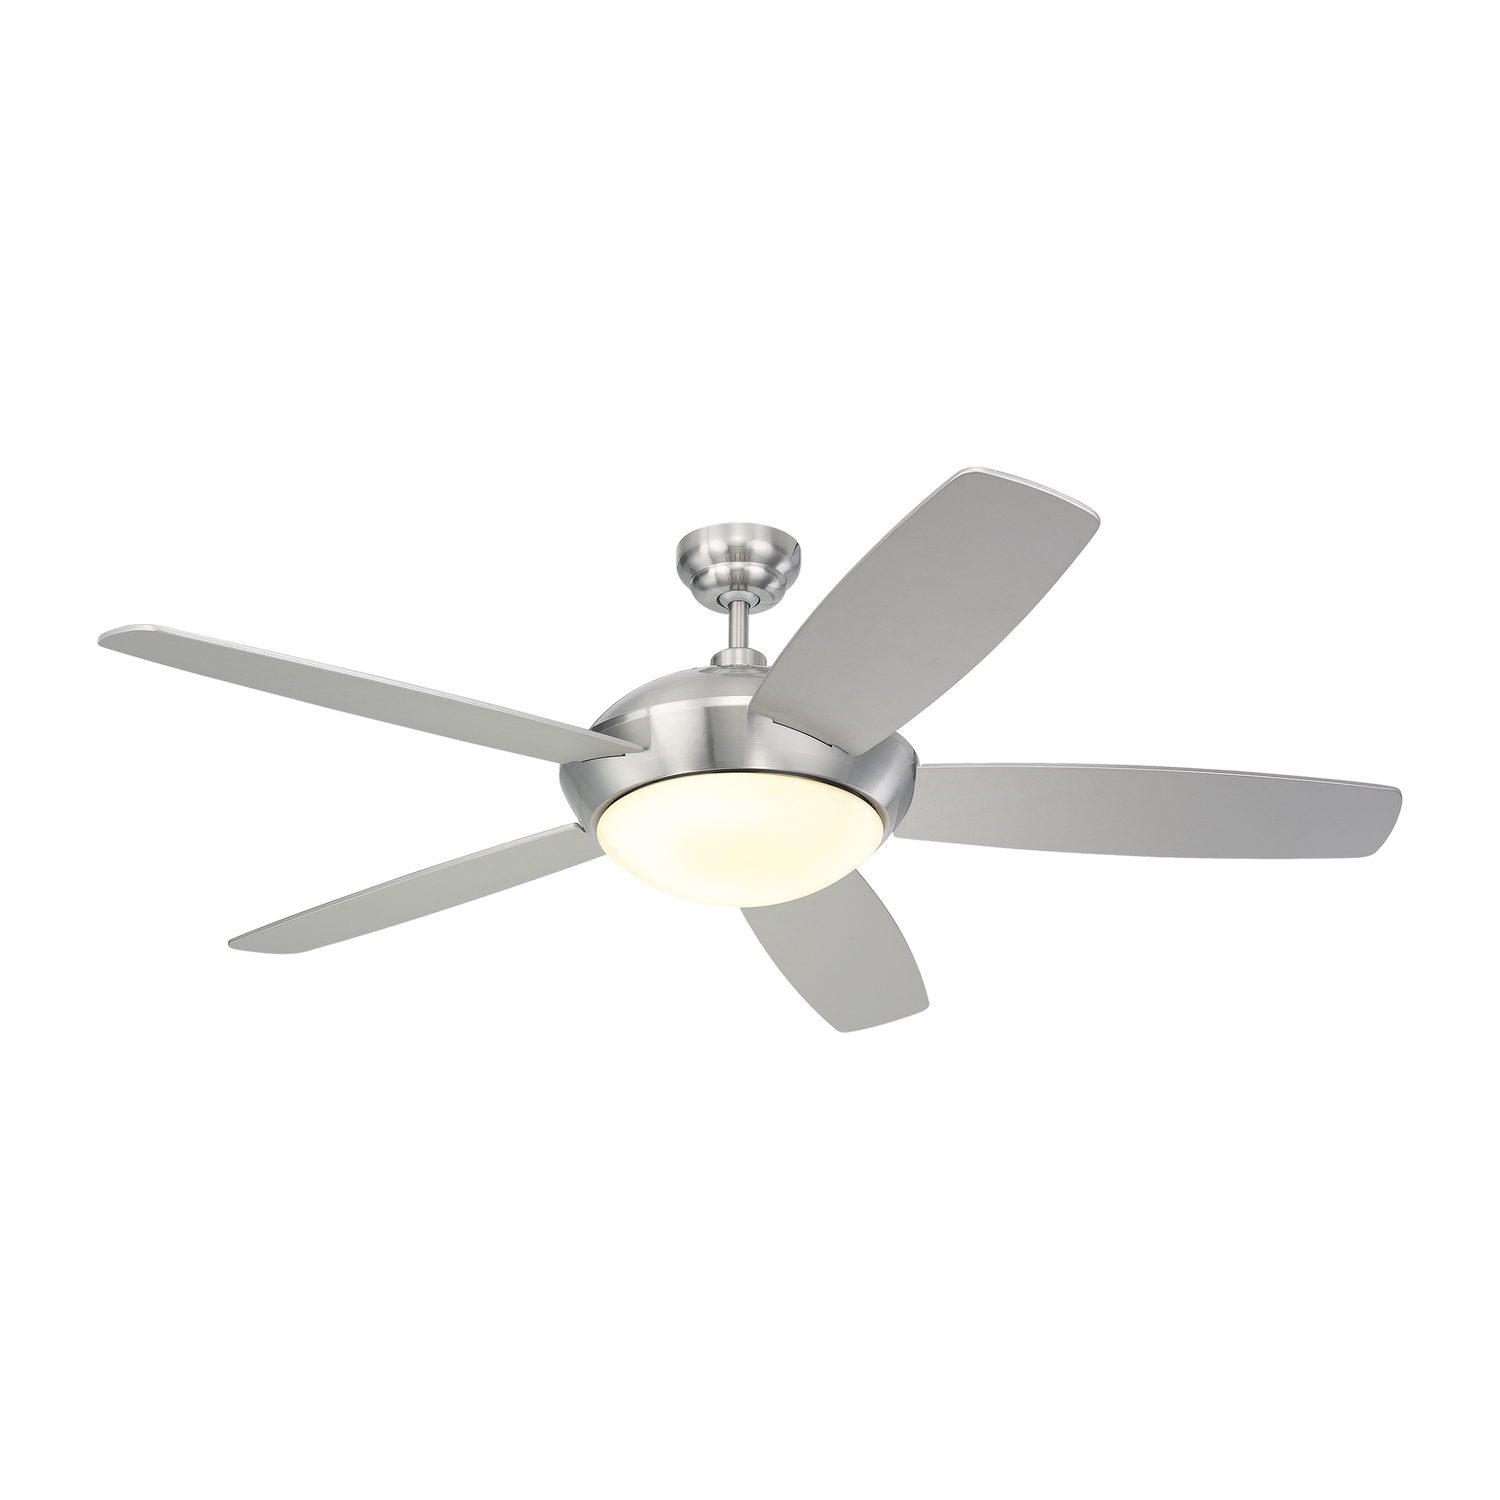 52 inchCeiling Fan from the Sleek collection by Monte Carlo 5SLR52BSD V1